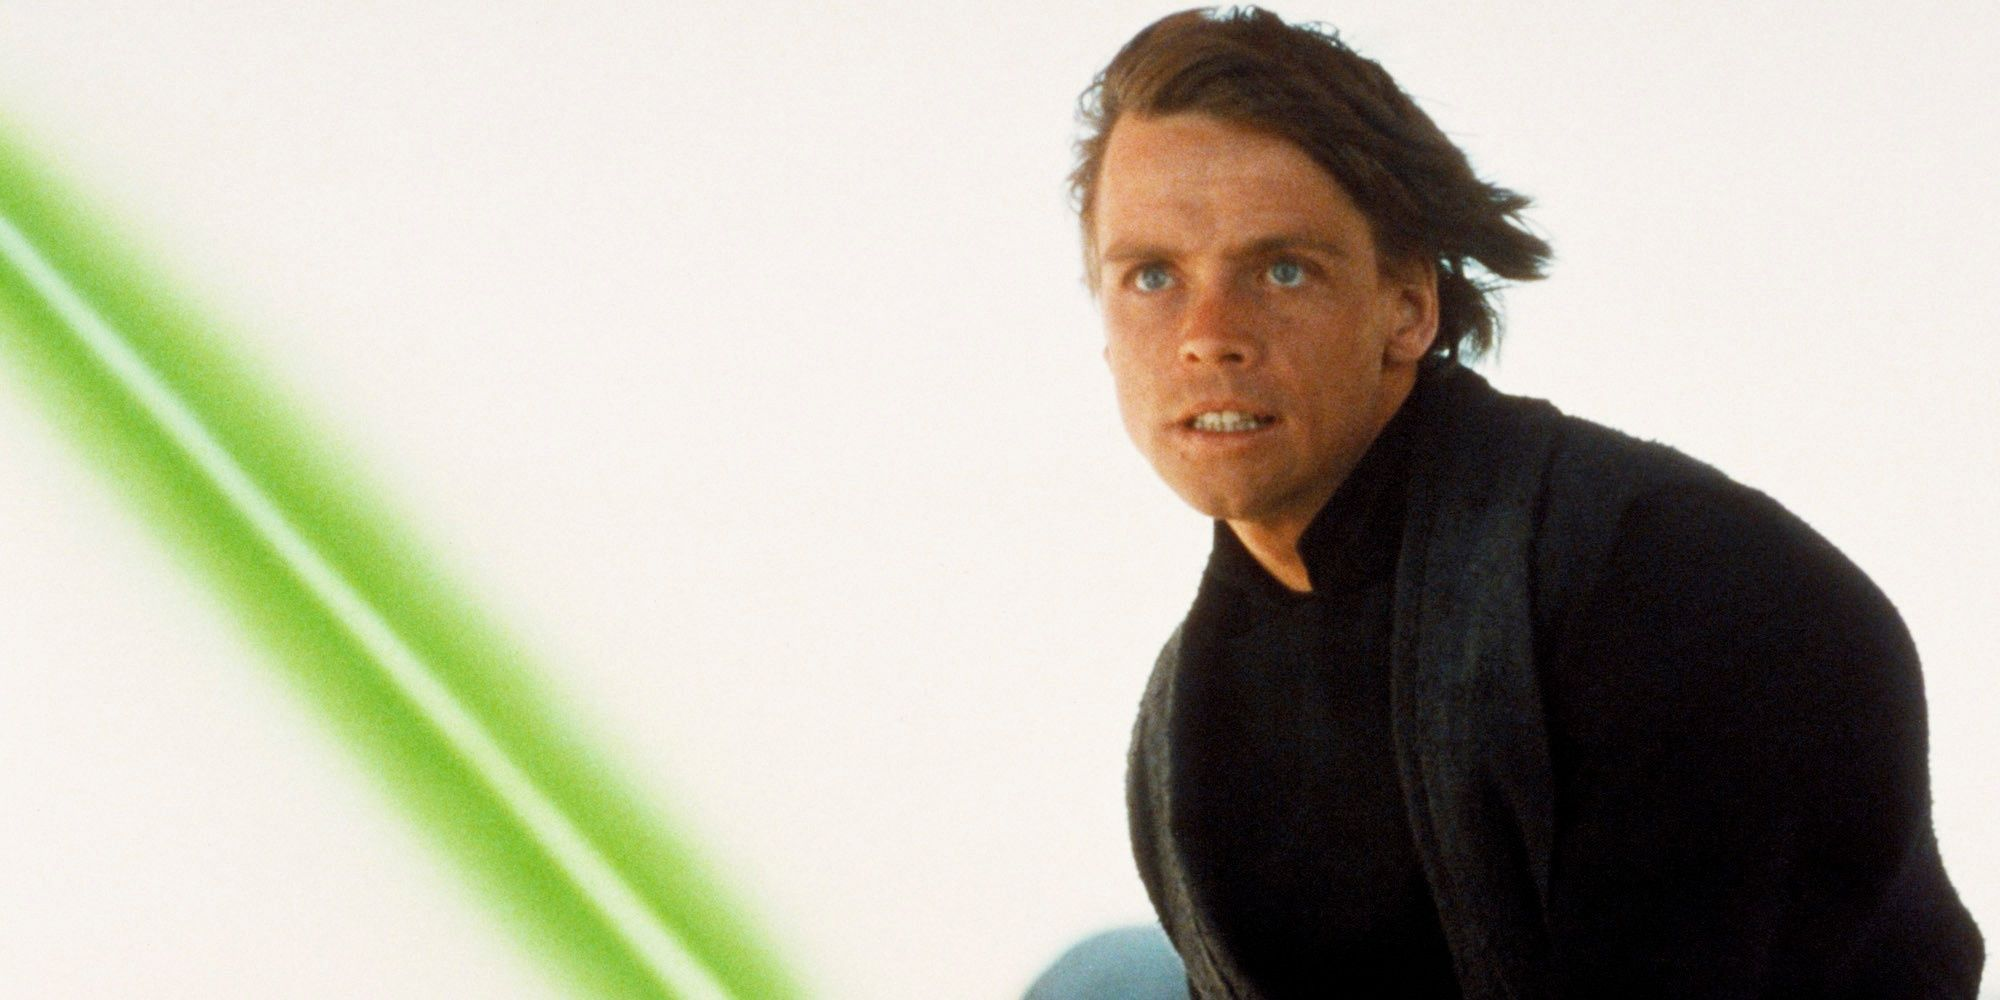 Mark Hamill's Reaction to His Star Wars Audition is Priceless